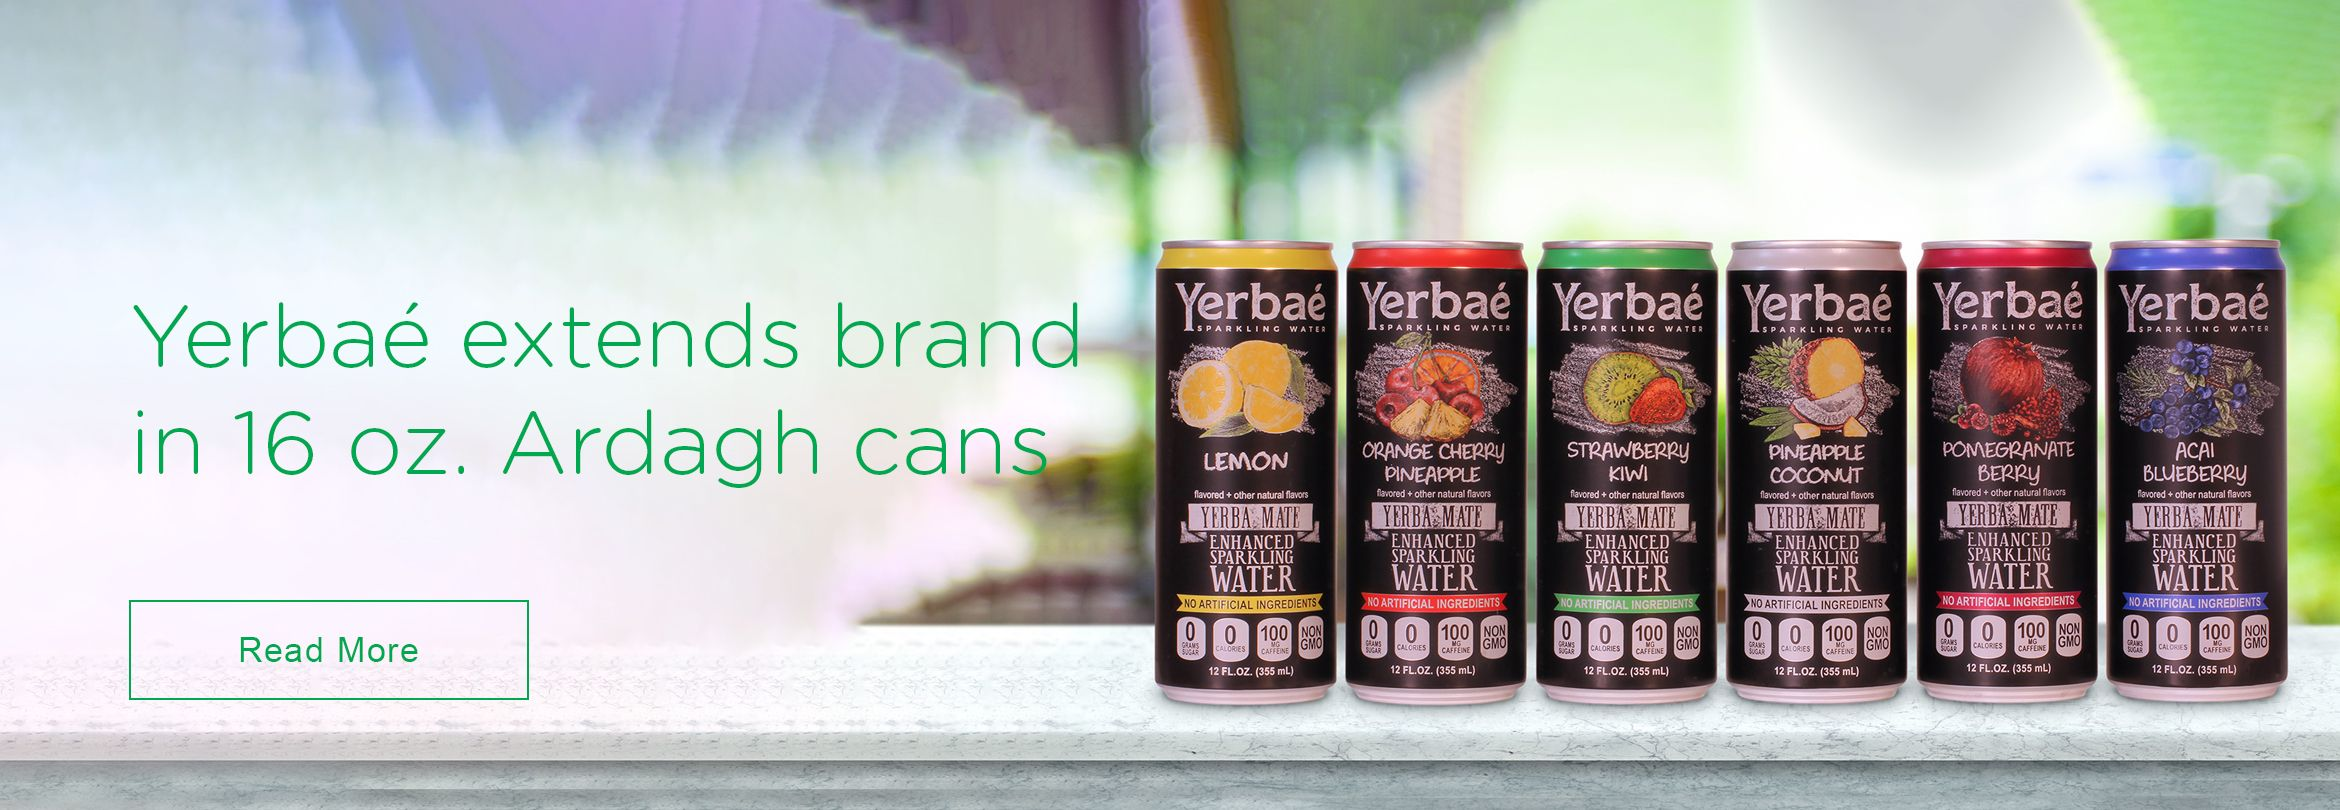 Yerbaé sparkling water extends brand in 16 oz. Ardagh cans